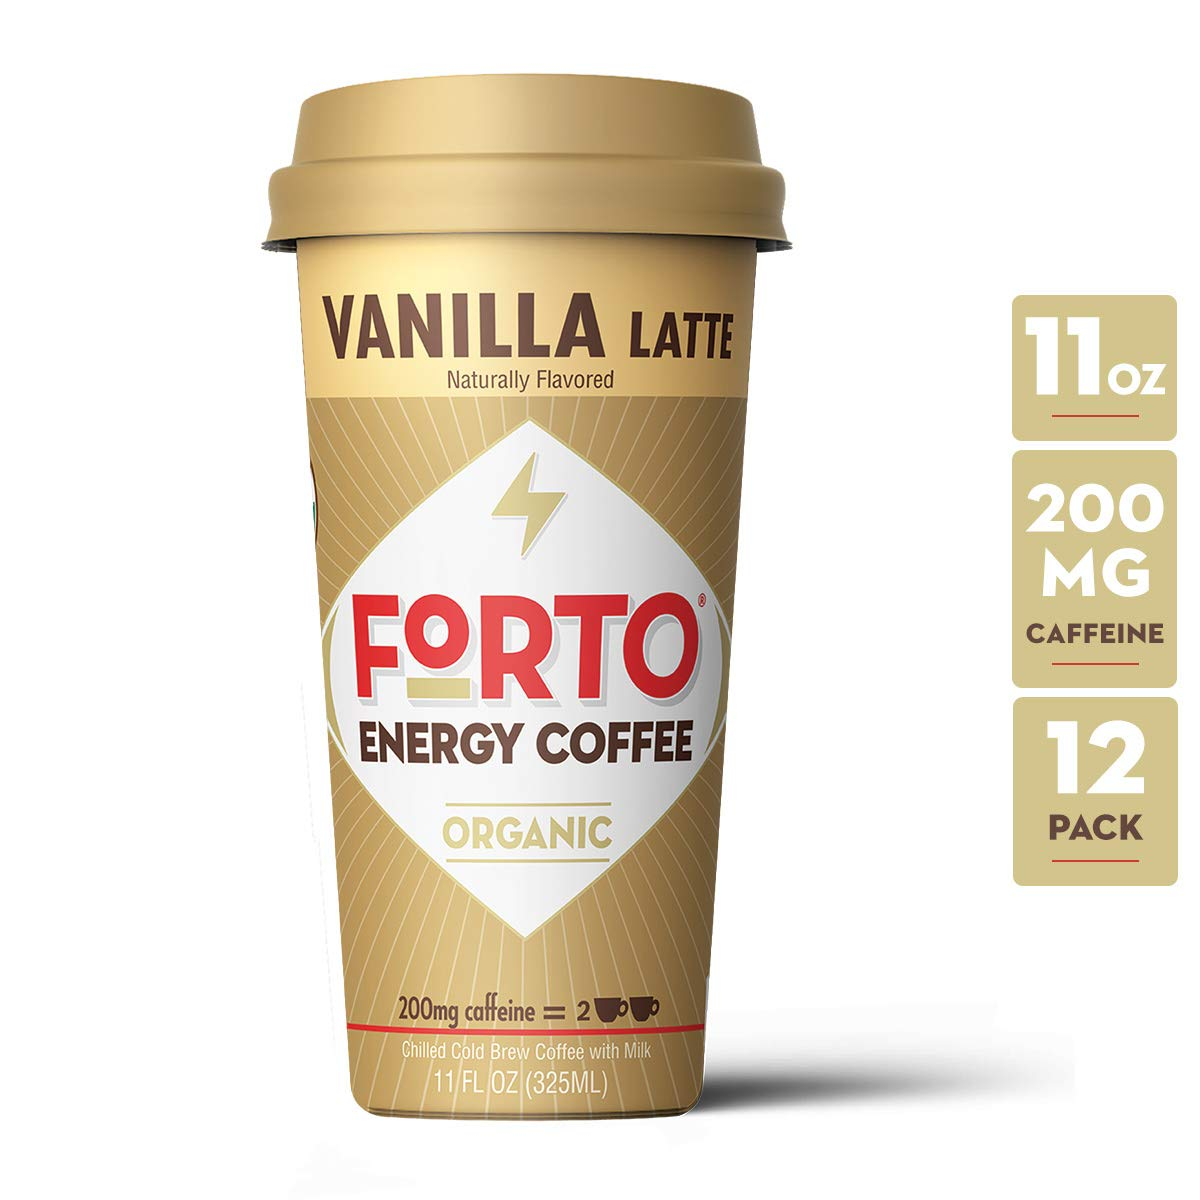 FORTO Energy Coffee - 200mg Caffeine, Vanilla Latte, Delicious & Organic Energy, Ready-To-Drink 11 Fl Oz, Pack of 12